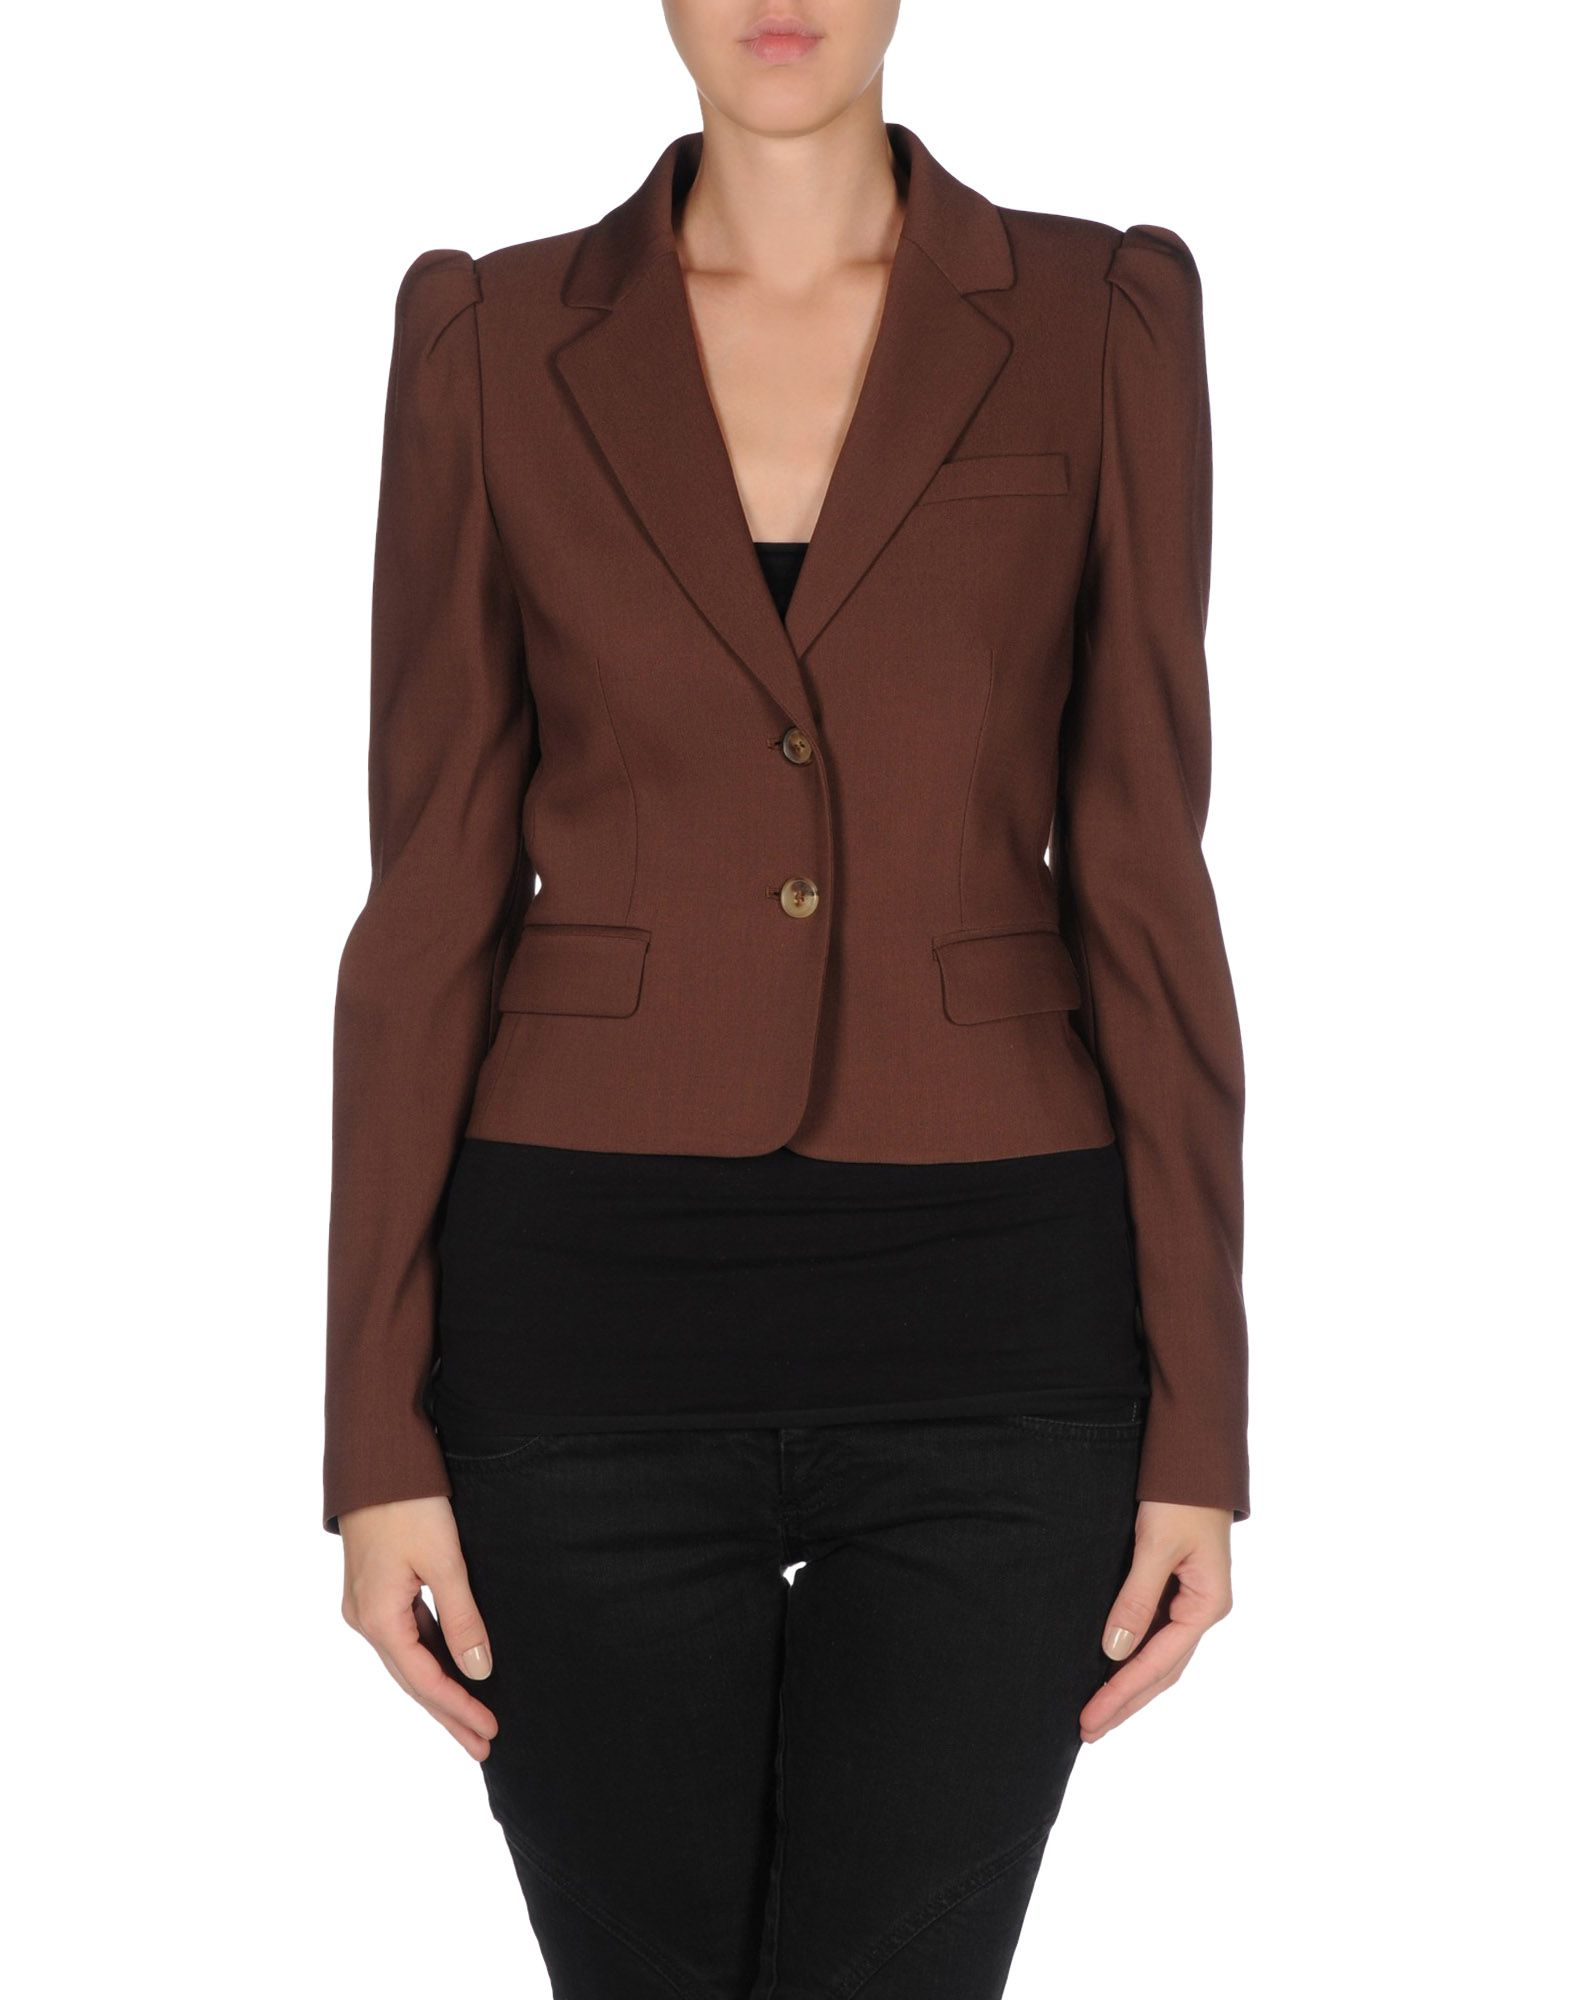 michael kors blazer in brown save 71 lyst. Black Bedroom Furniture Sets. Home Design Ideas